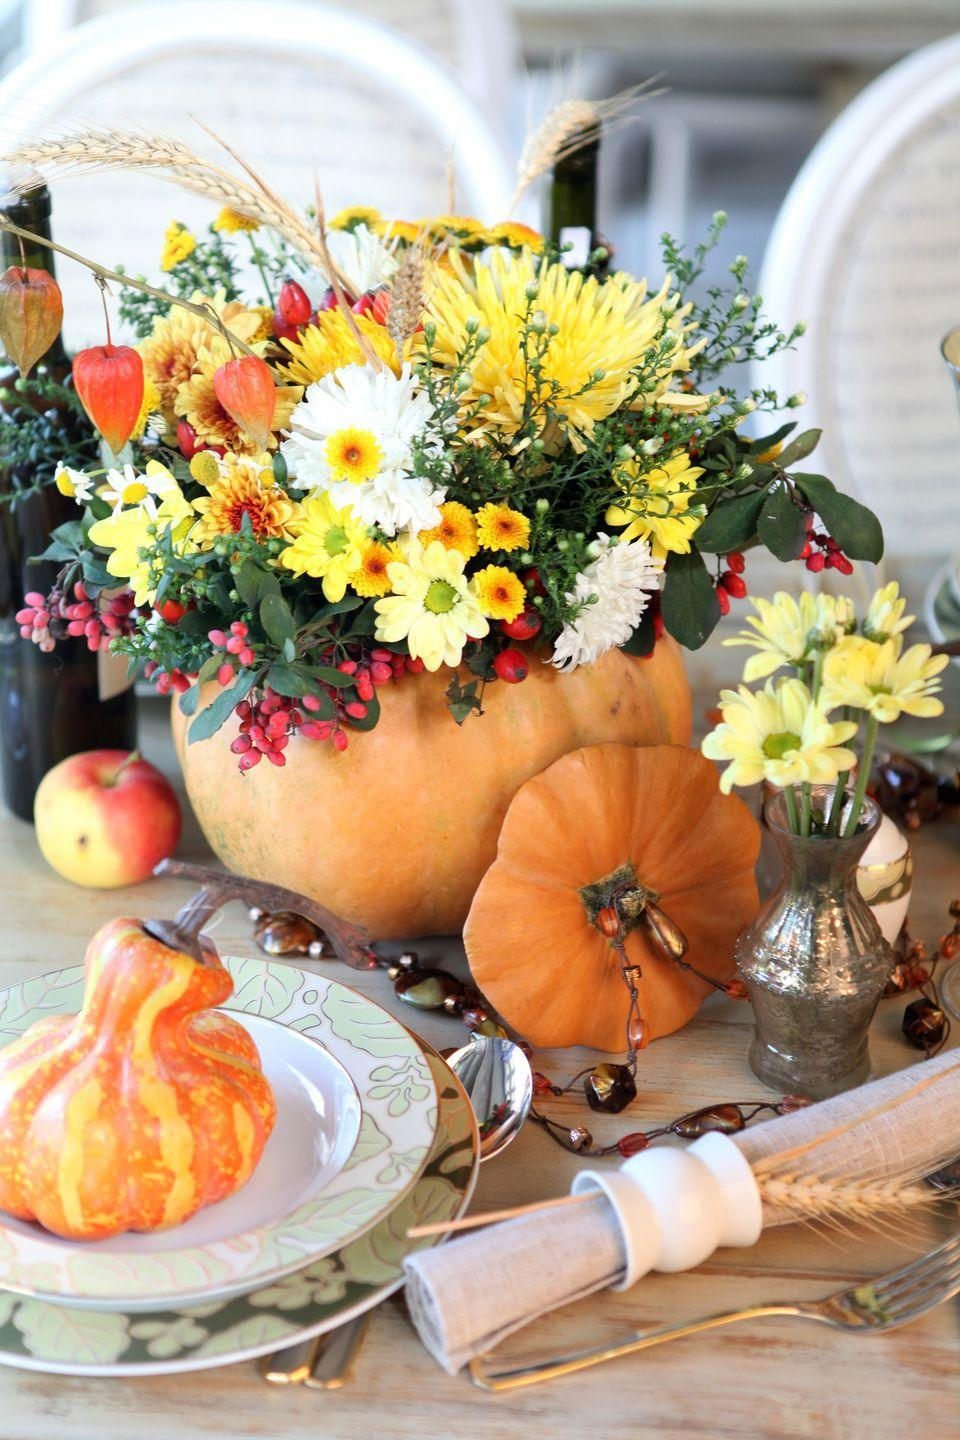 """<p>Gather a sweet grouping of wildflowers into a hollowed out pumpkin for an easy-but-show-stopping centerpiece. Place smaller gourds on guests' plates and accent the rest of the table with smaller arrangements housed in mercury glass bud vases. </p><p><a class=""""link rapid-noclick-resp"""" href=""""https://www.amazon.com/Serene-Spaces-Living-Mercury-Crackle/dp/B0182JN73C/ref=sr_1_6?dchild=1&keywords=mercury+glass+bud+vase&qid=1629996419&sr=8-6&tag=syn-yahoo-20&ascsubtag=%5Bartid%7C10050.g.2130%5Bsrc%7Cyahoo-us"""" rel=""""nofollow noopener"""" target=""""_blank"""" data-ylk=""""slk:SHOP VASES"""">SHOP VASES</a></p>"""